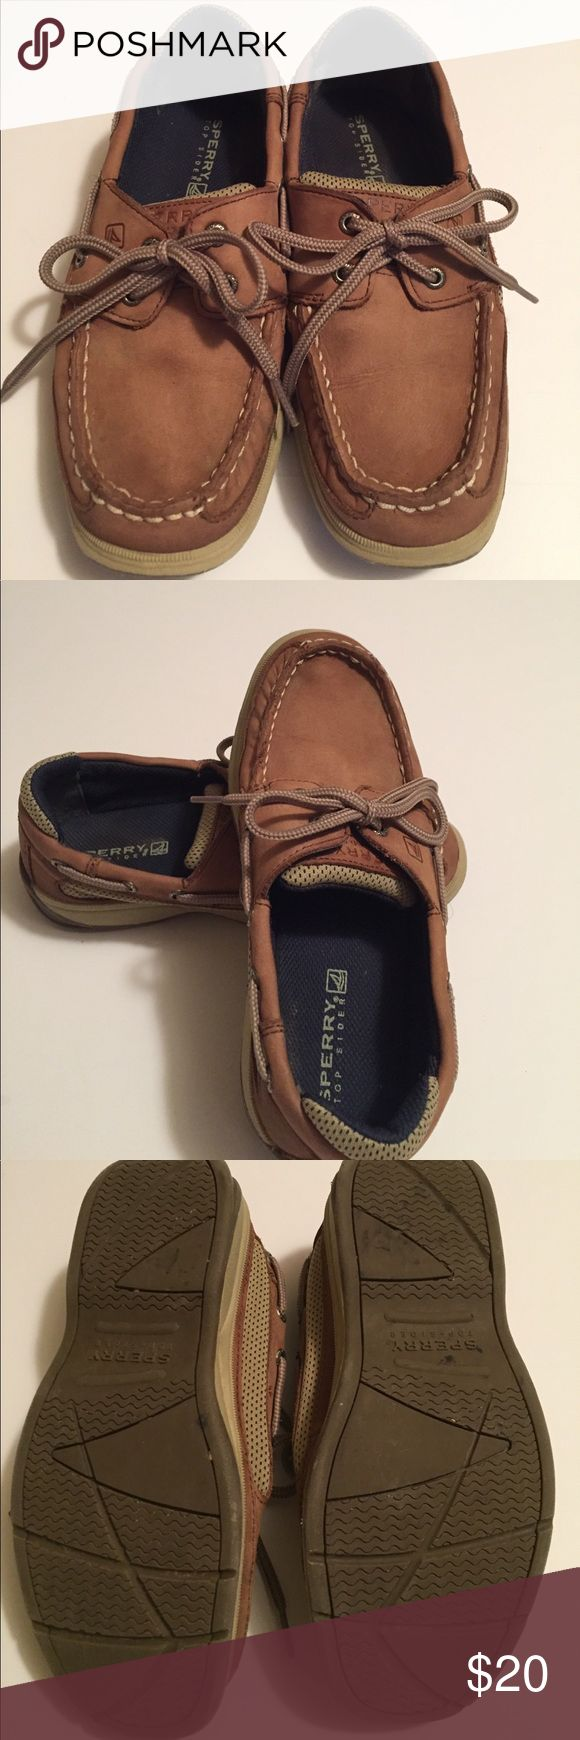 EUC Kids Sperry EXCELLENT USED CONDITION! Very clean suede Sperry Topsiders. Purchased at the Sperry Boutique in Charleston SC Sperry Top-Sider Shoes